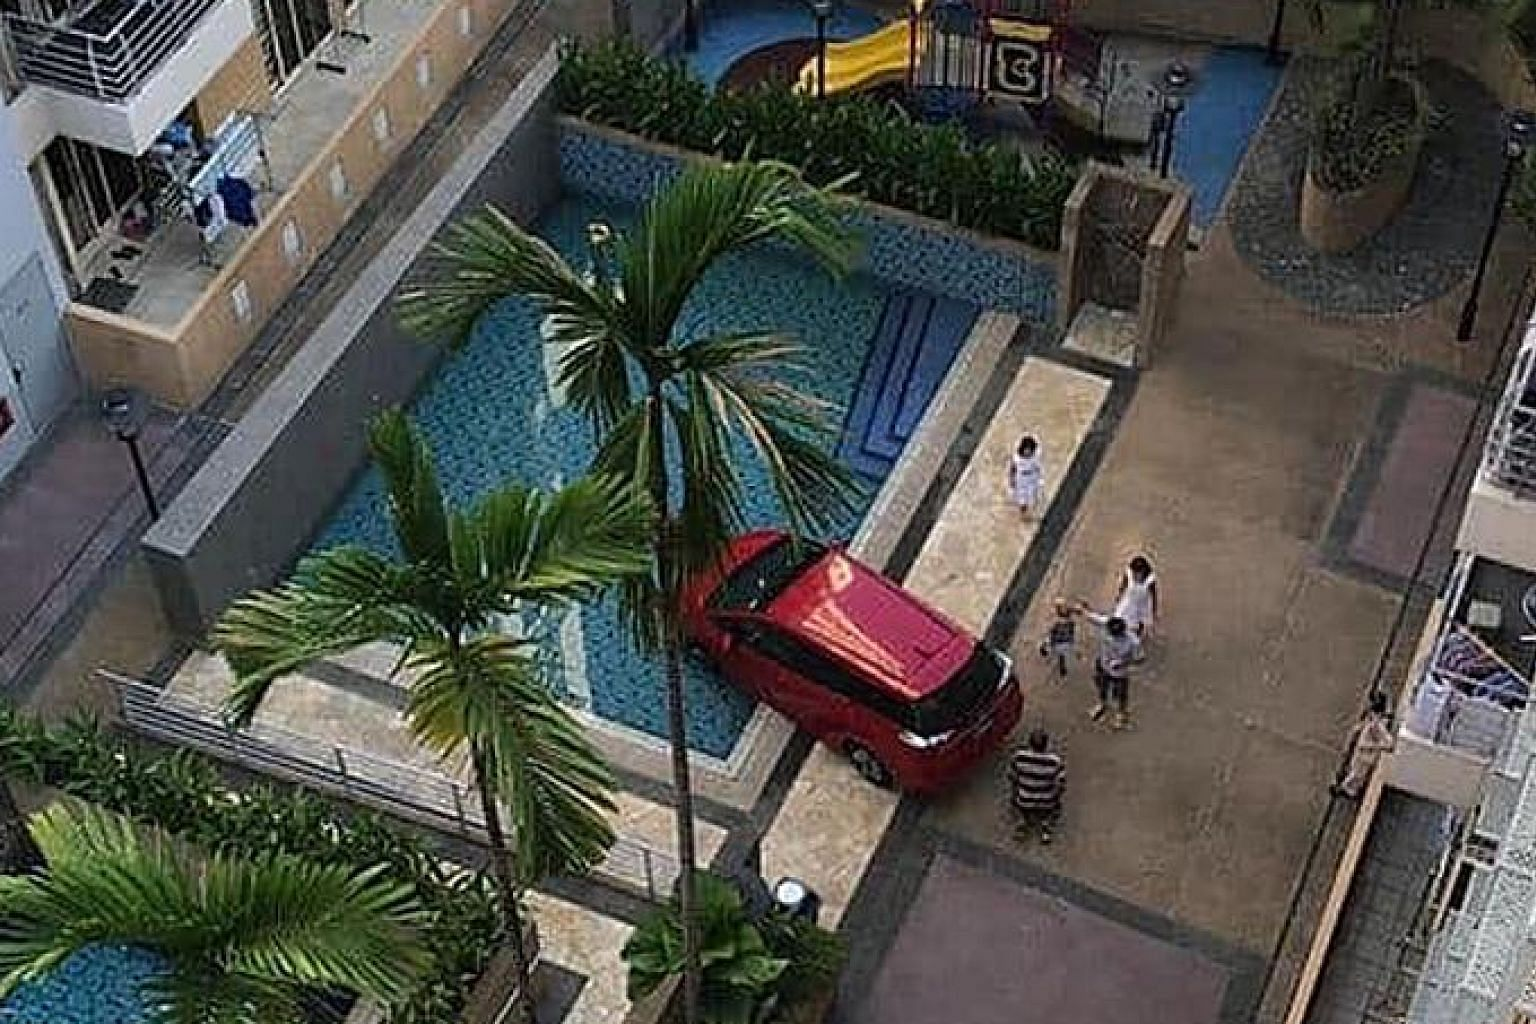 The red Honda Shuttle was reported to be a private-hire vehicle that had driven into the condominium compound on Sunday to pick up a passenger.